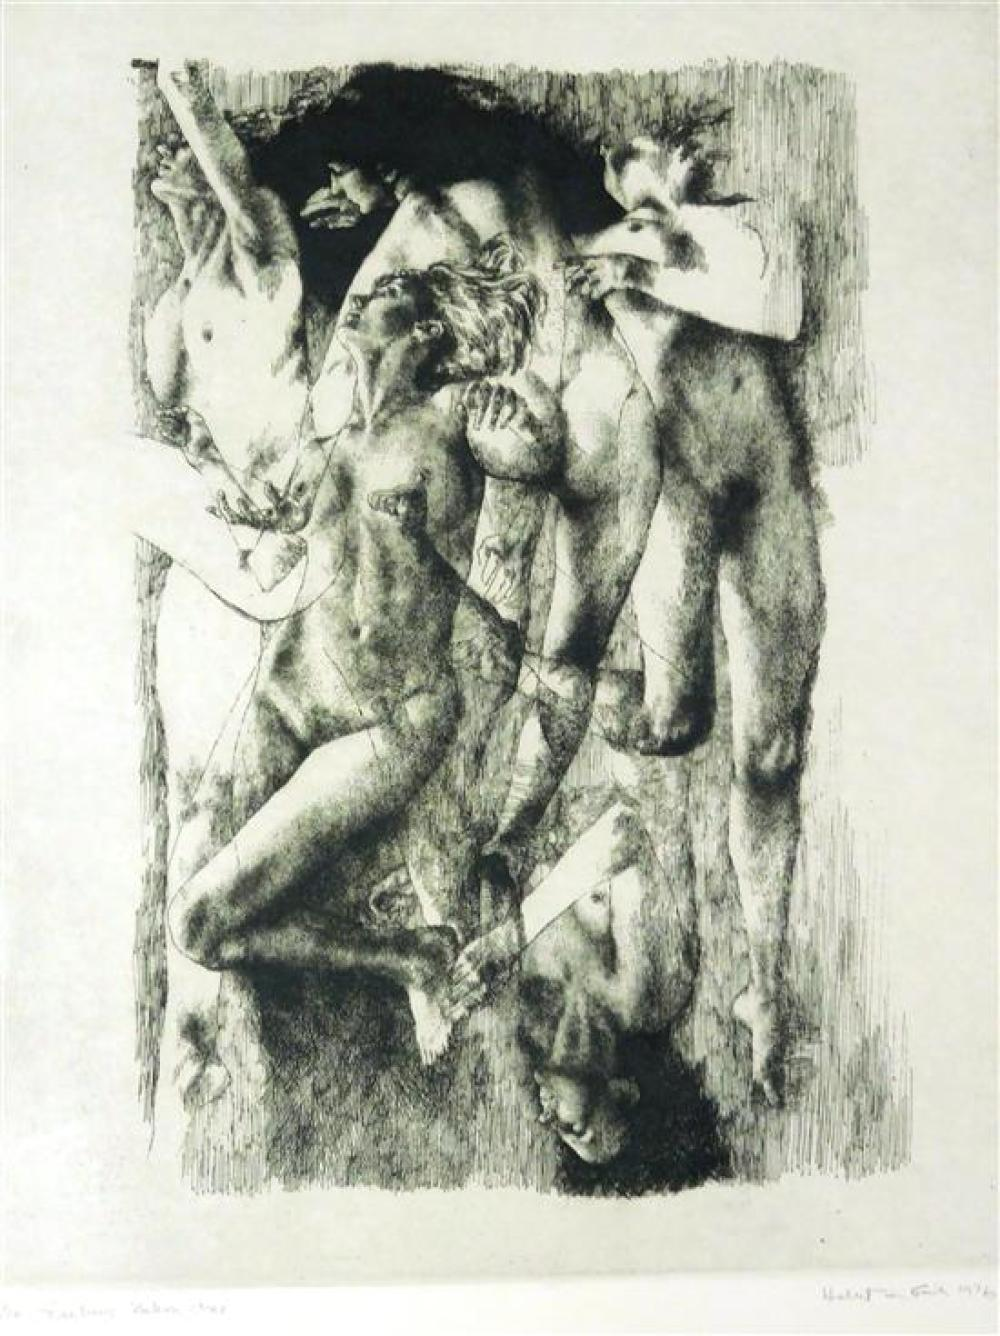 """Herbert Fink (American, 1921-2006), three prints: """"My Bicentenial Print"""", etching and aquatint, 1976, ed: 100, signed and dated with..."""